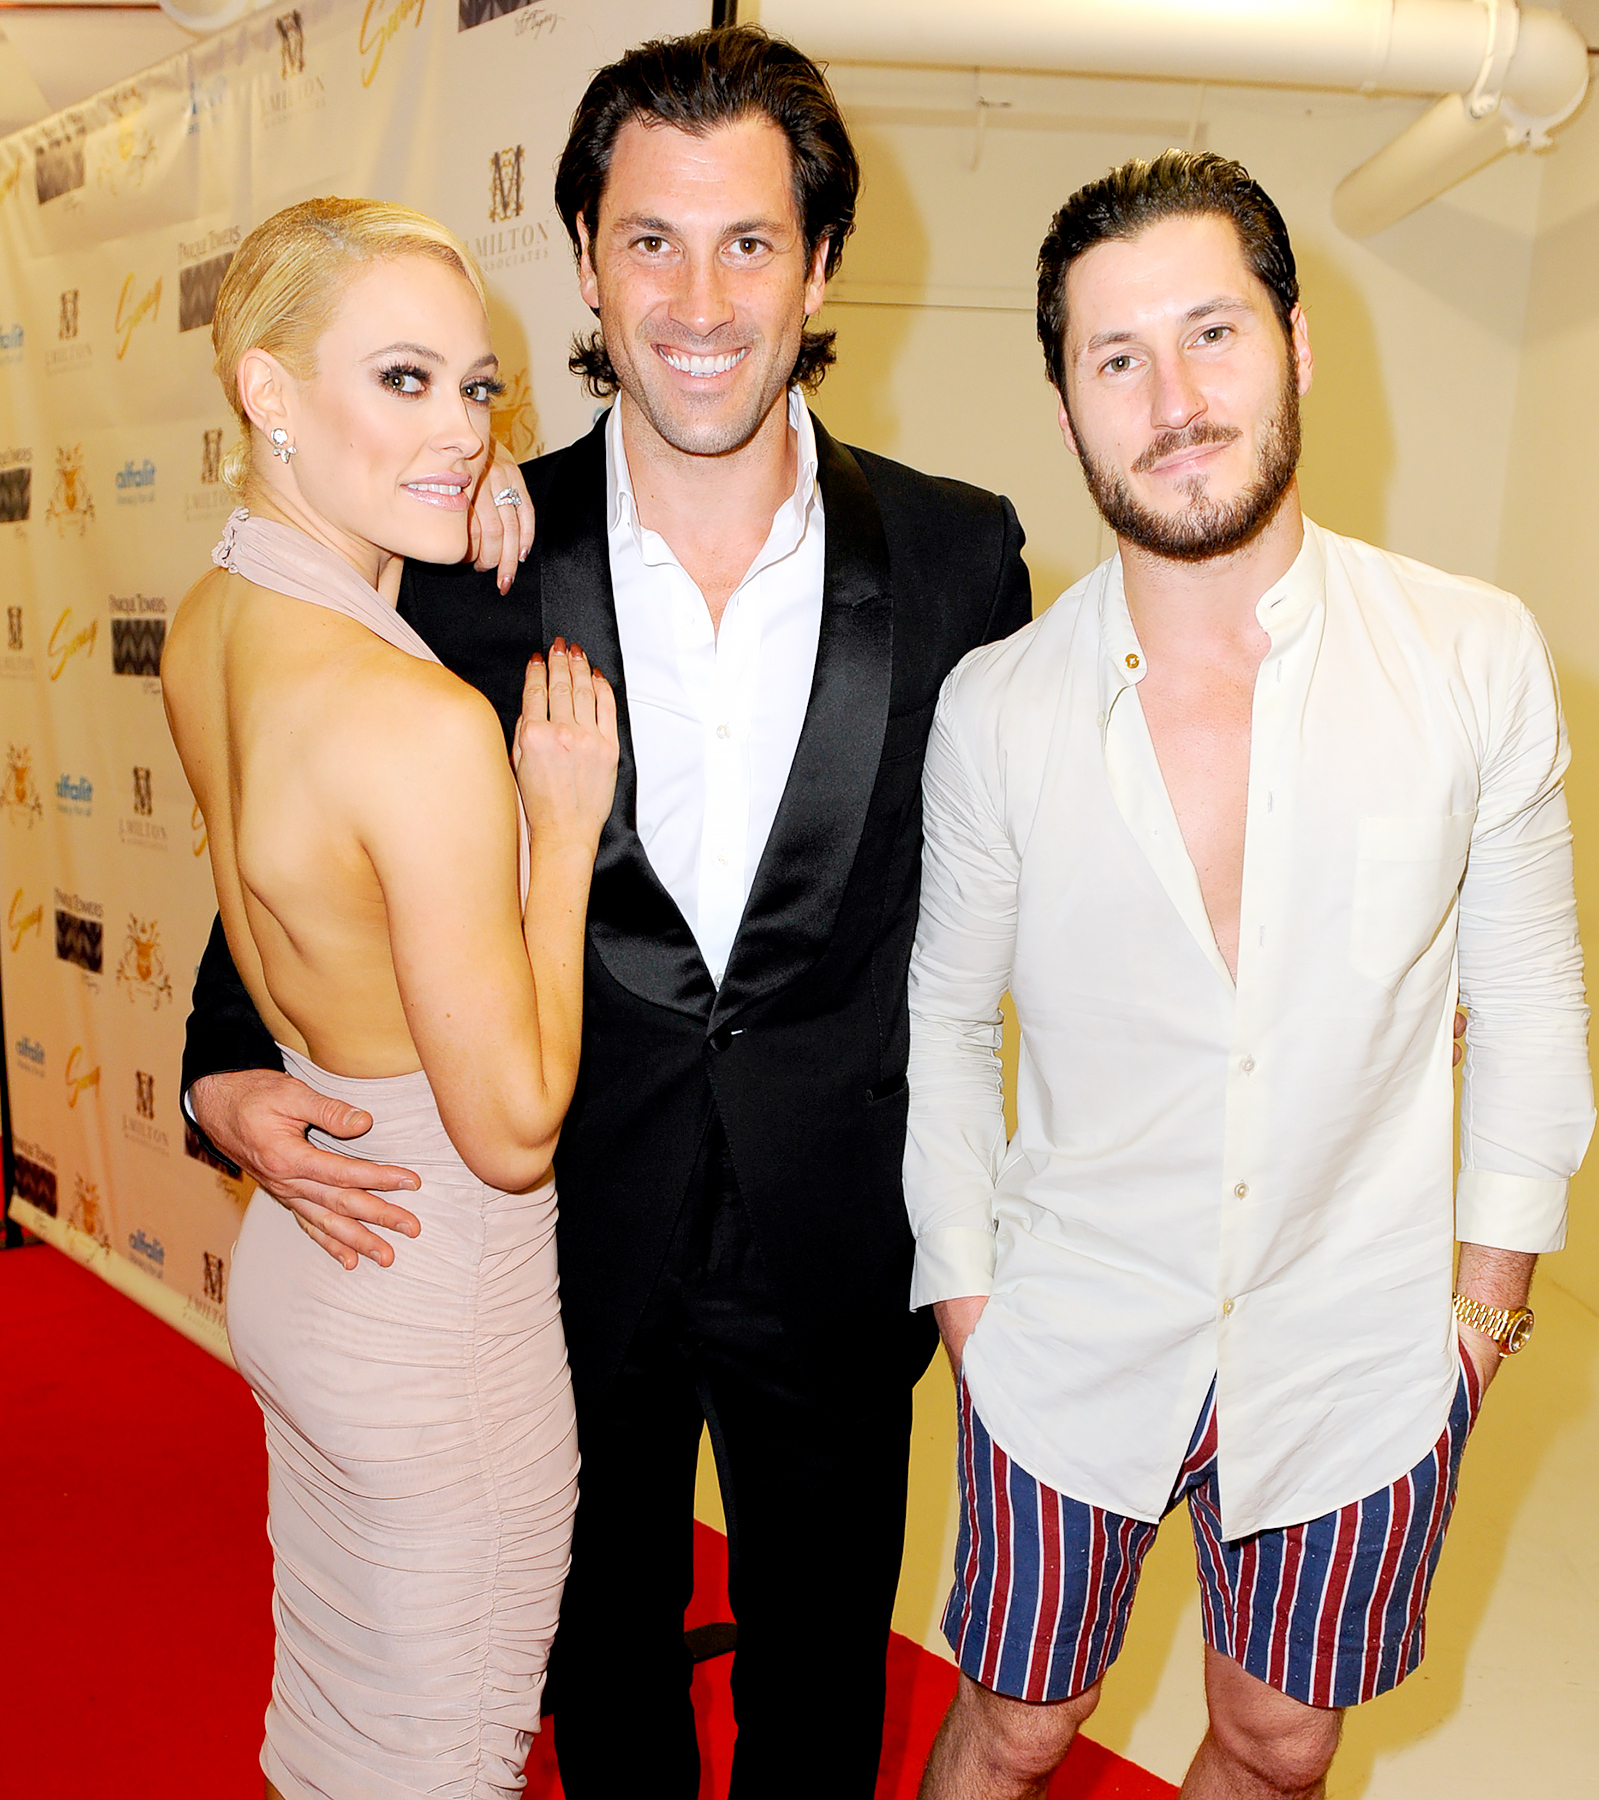 Peta Murgatroyd, Maks Chmerkovskiy and Valentin Chmerkovskiy attend SWAY Alfalit Gala at Gary Nader Art centre on December 5, 2015 in Miami, Florida.